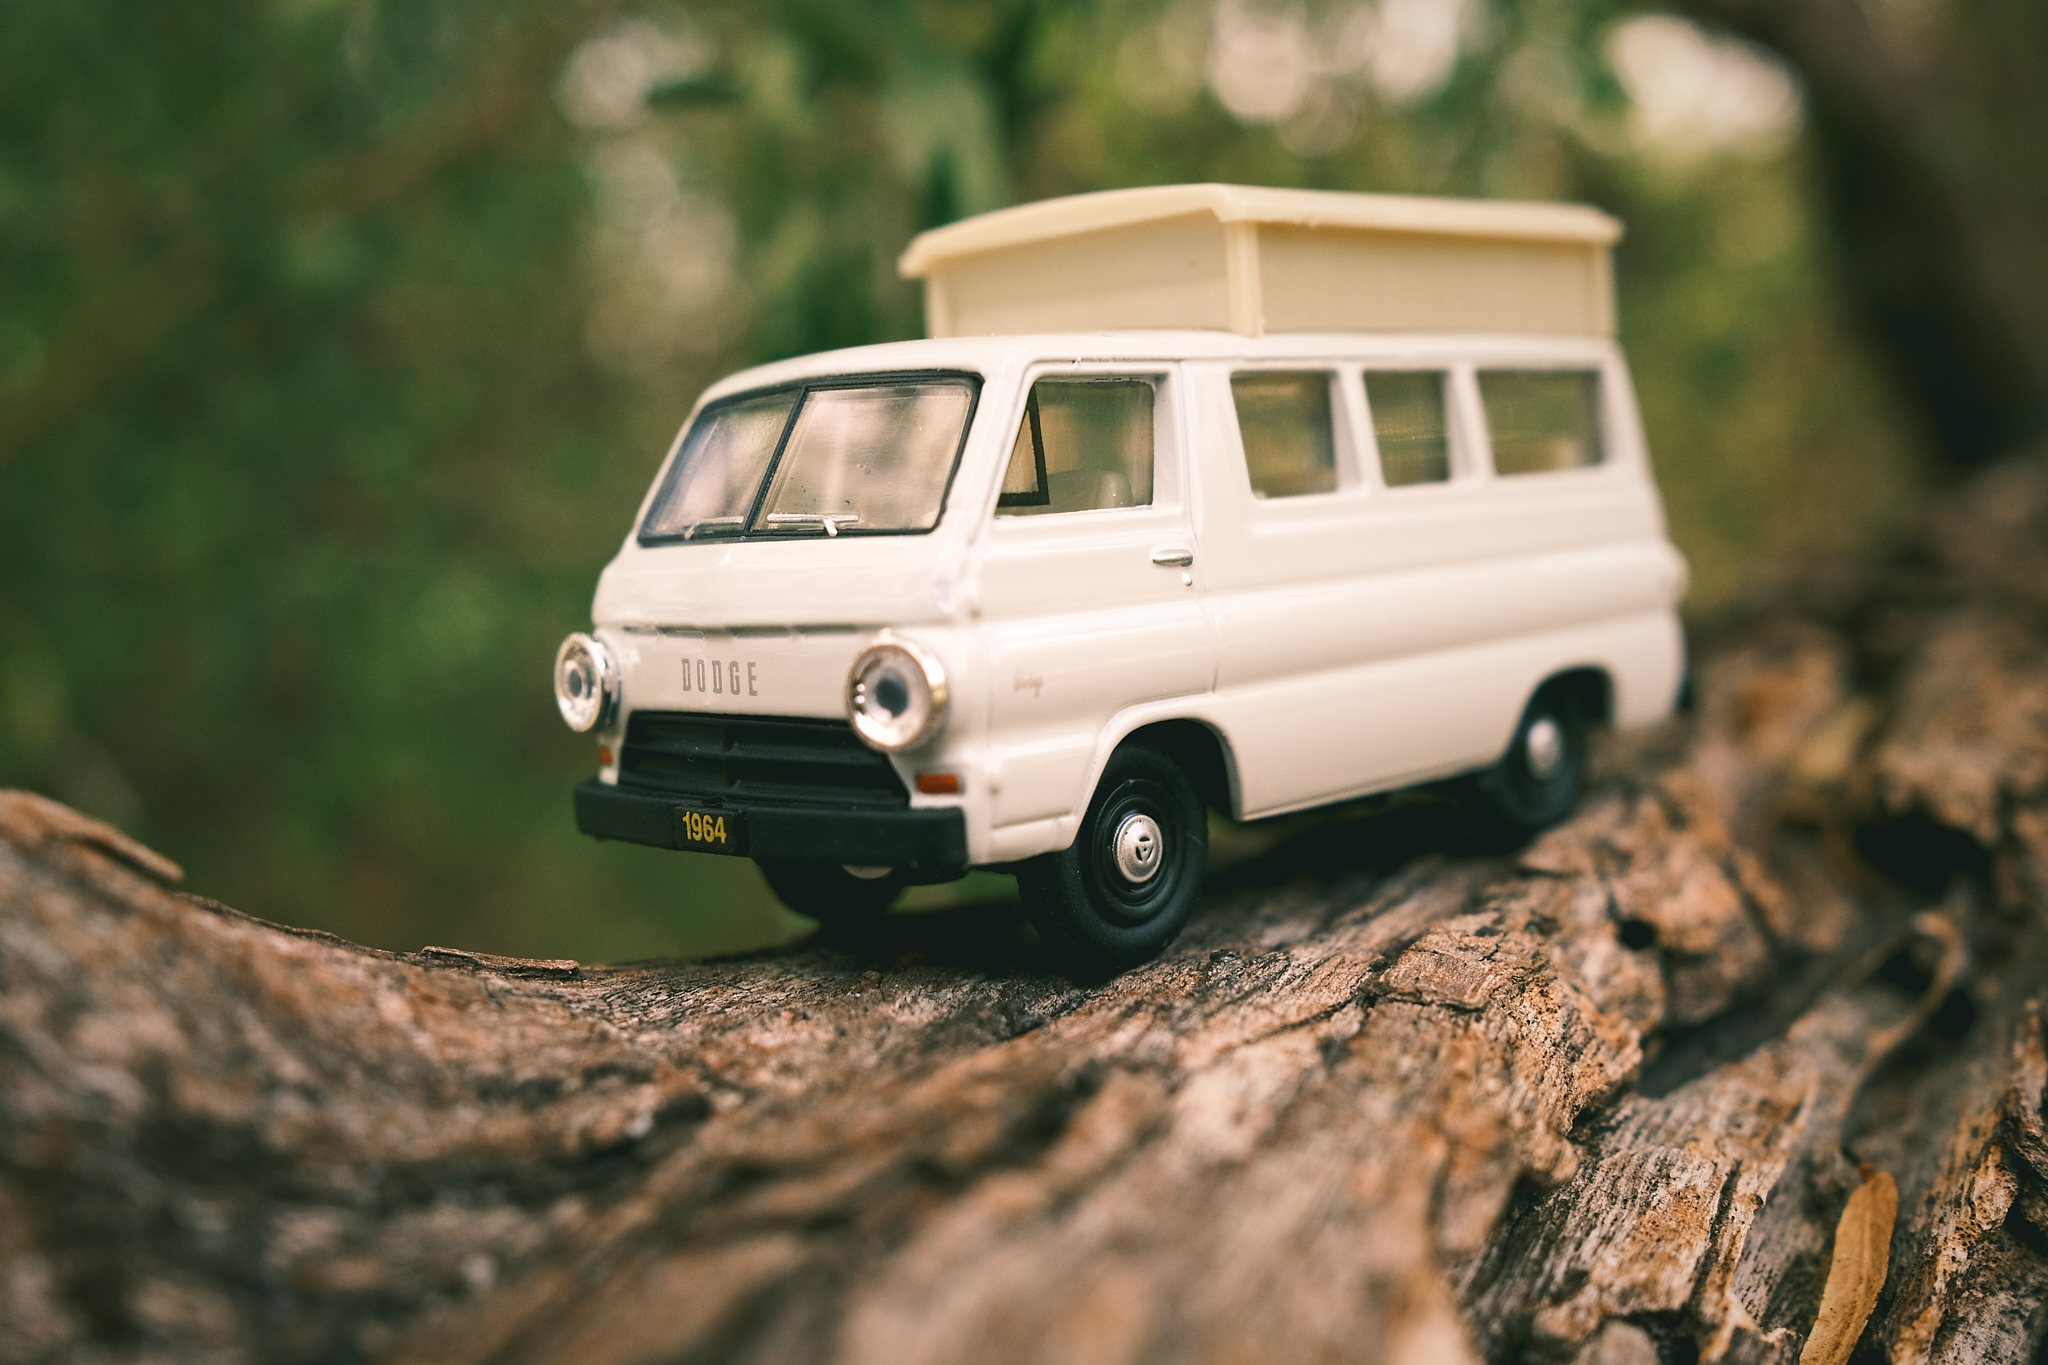 Forced Perspective: Toy Van